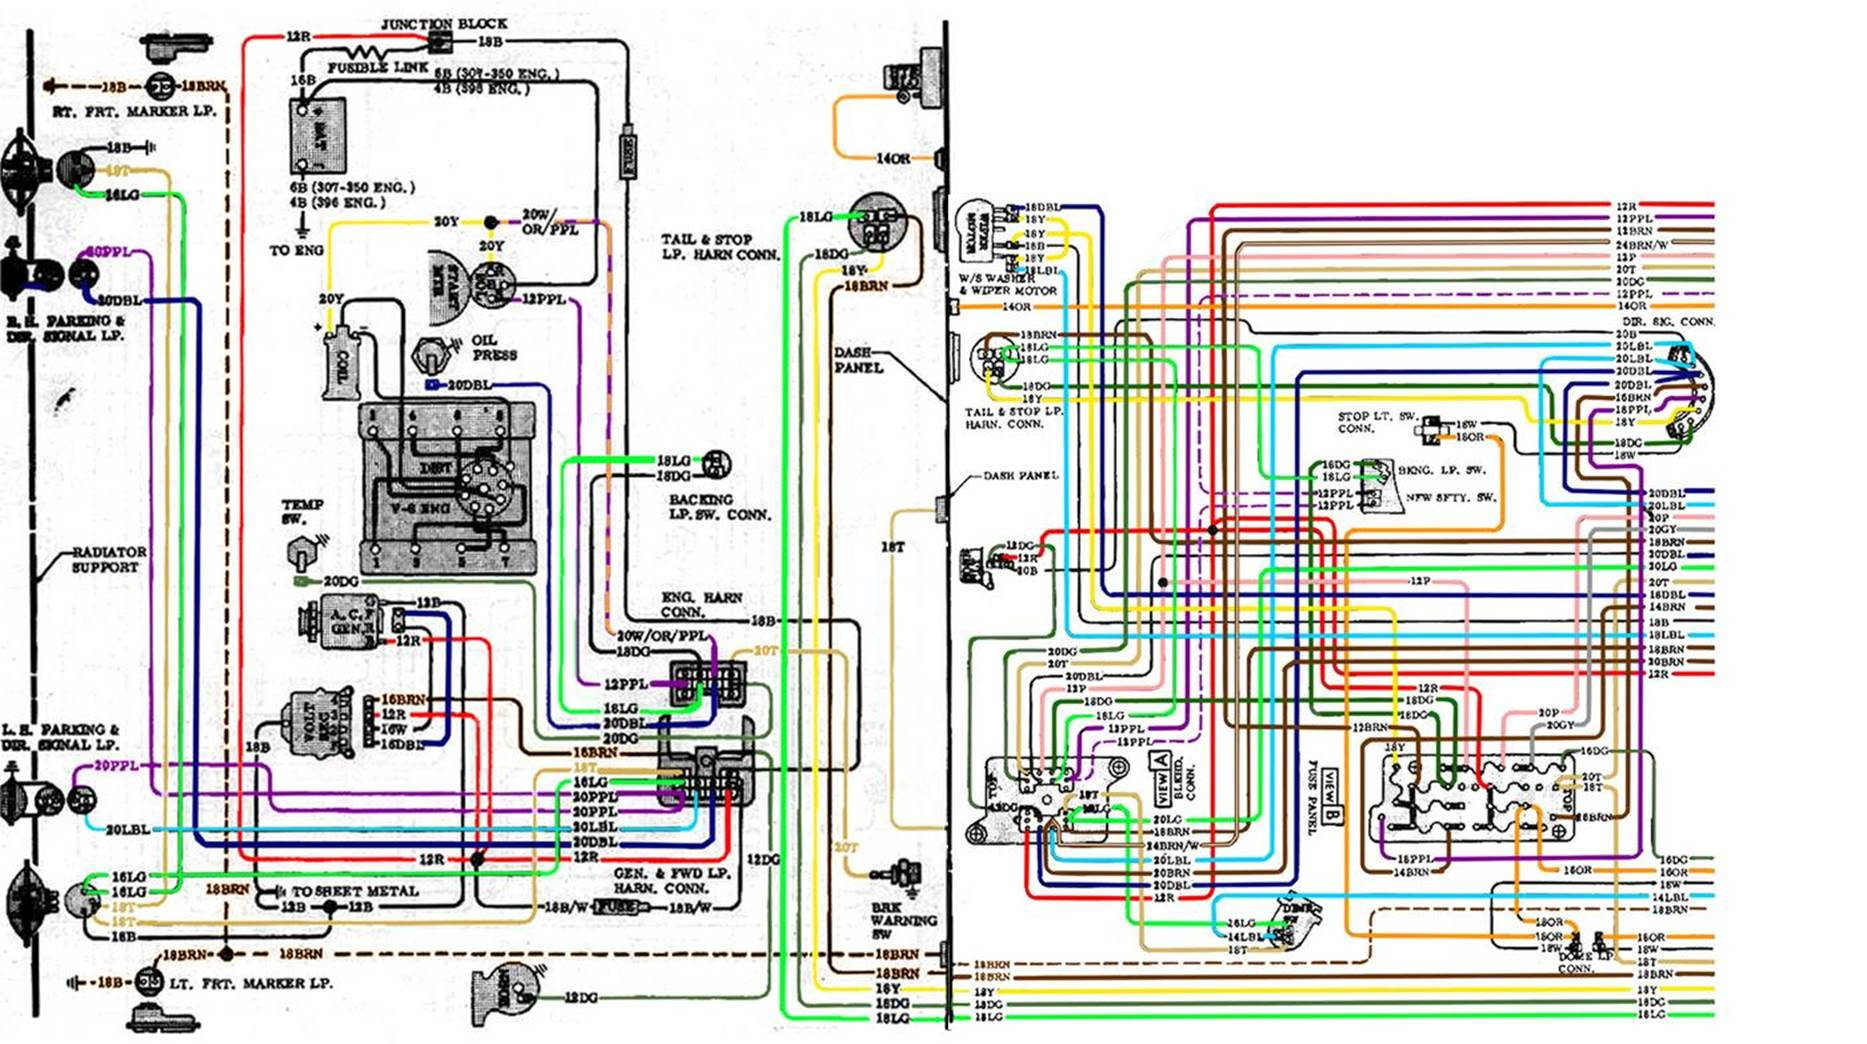 image002 67 72 chevy wiring diagram 1970 chevy c10 wiring harness at eliteediting.co